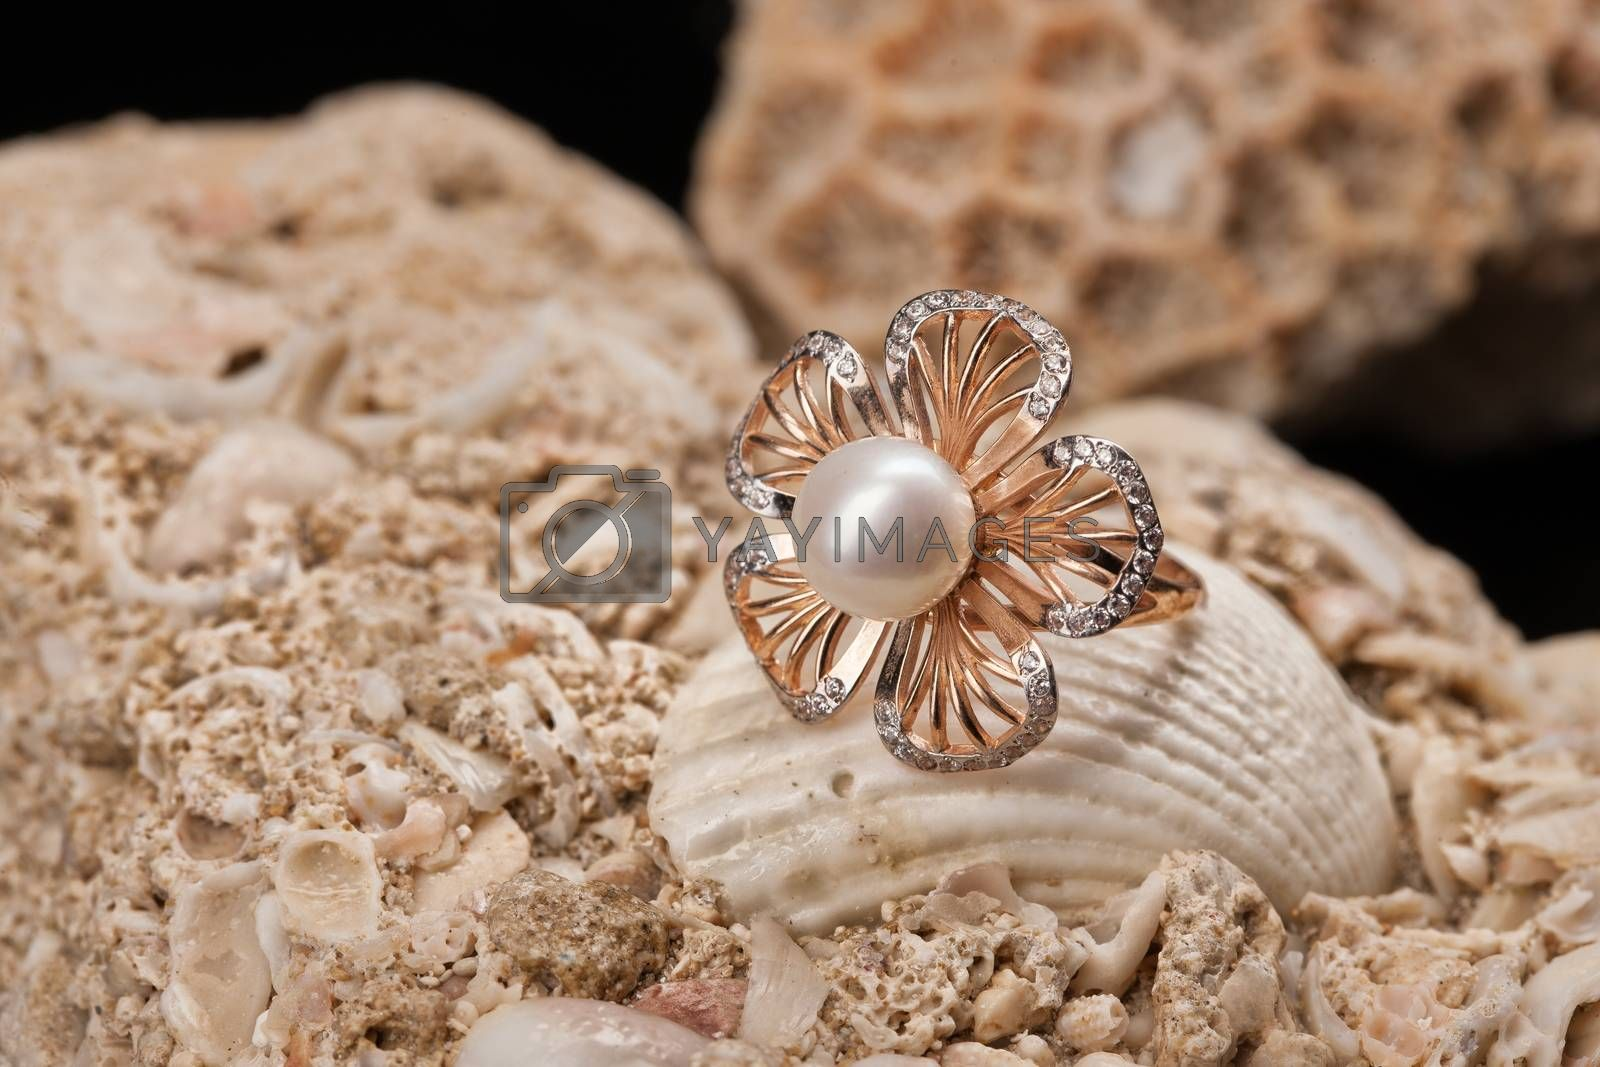 Golden ring with pearl and seashell on a stone background